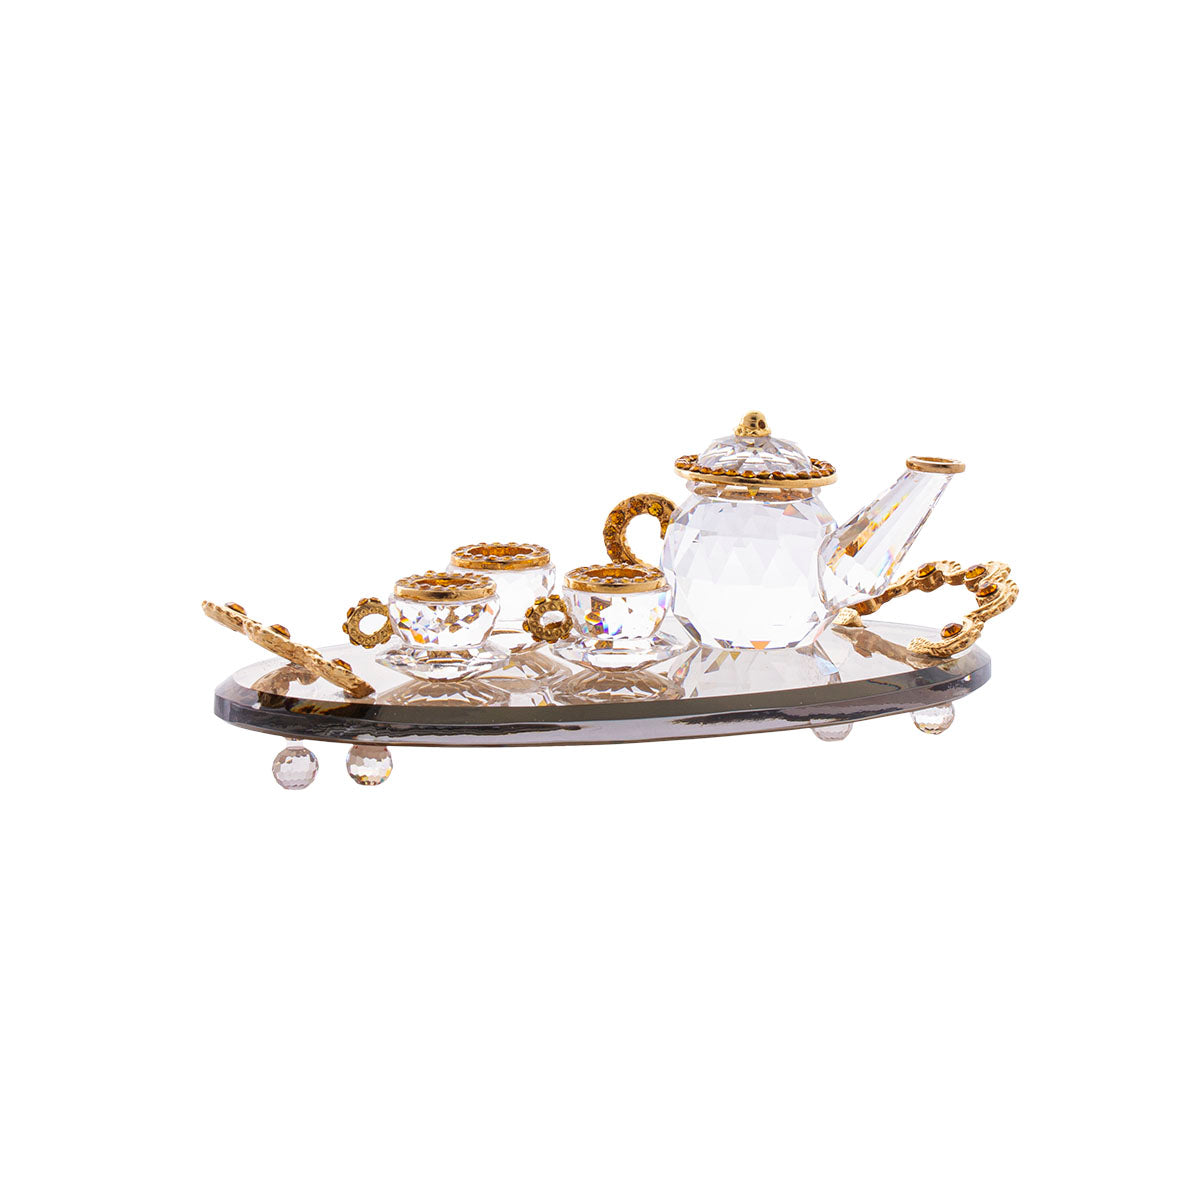 Tea Set - Cleat - Gold Plated - tray